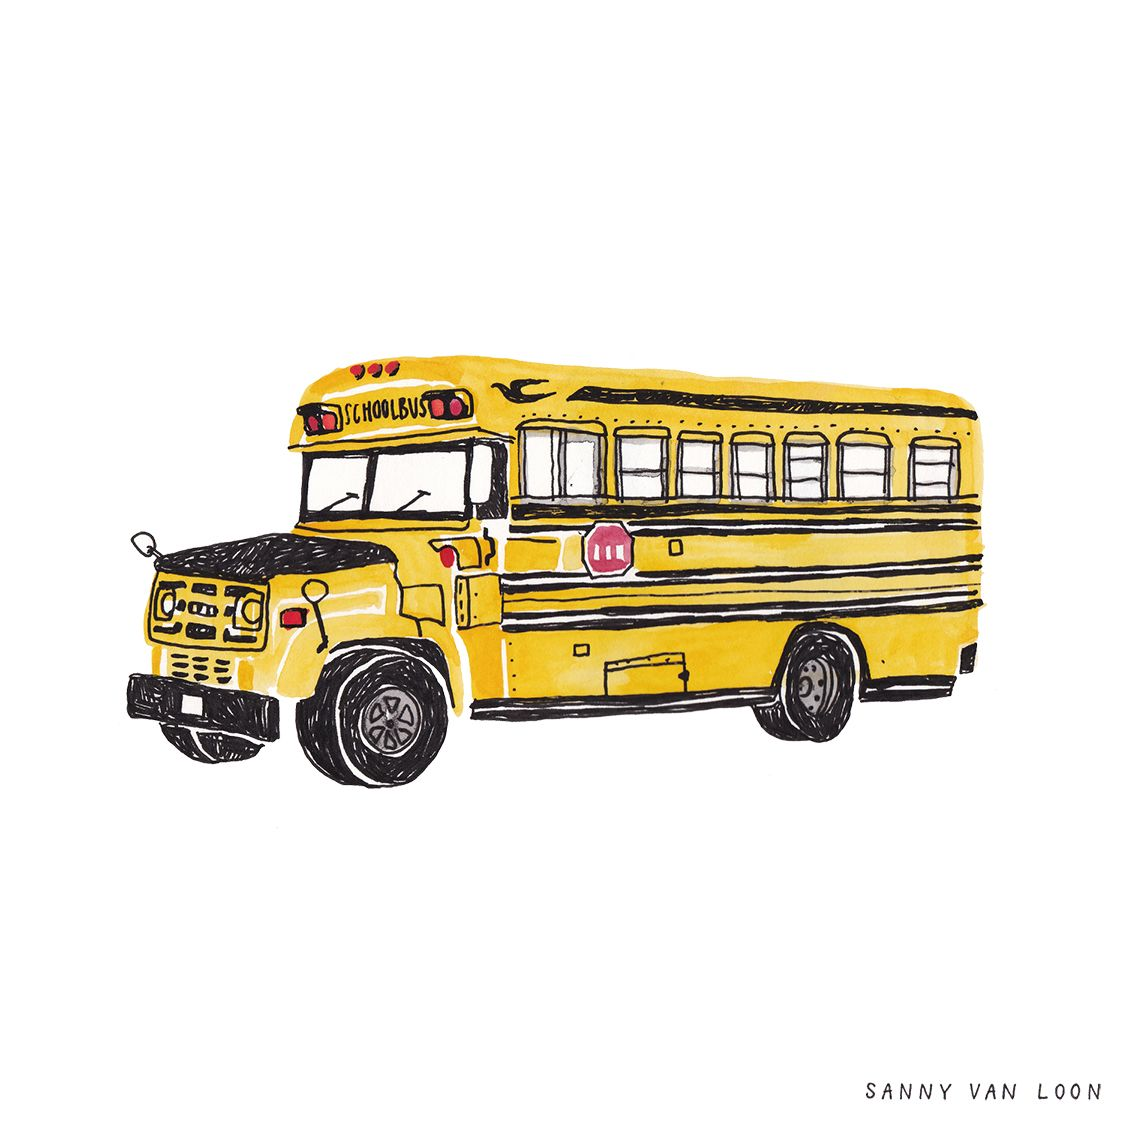 Vintage School Bus Illustration By Sanny Van Loon With Images